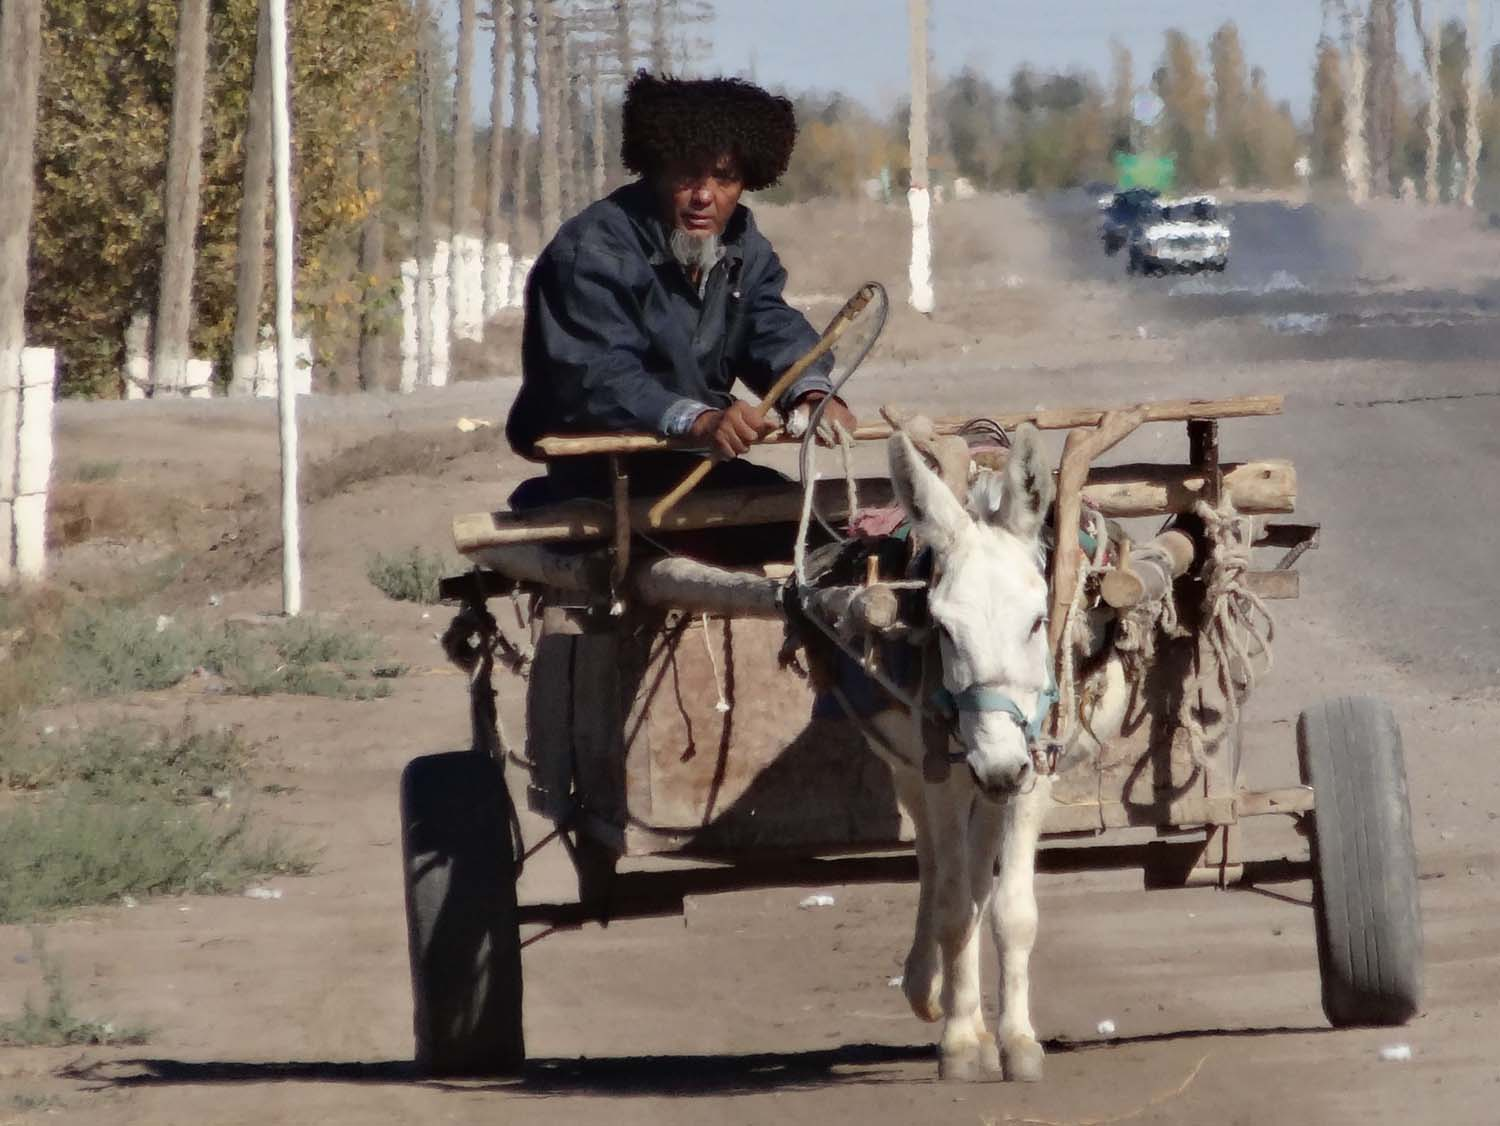 still plenty of donkeys and carts in Turkmenistan